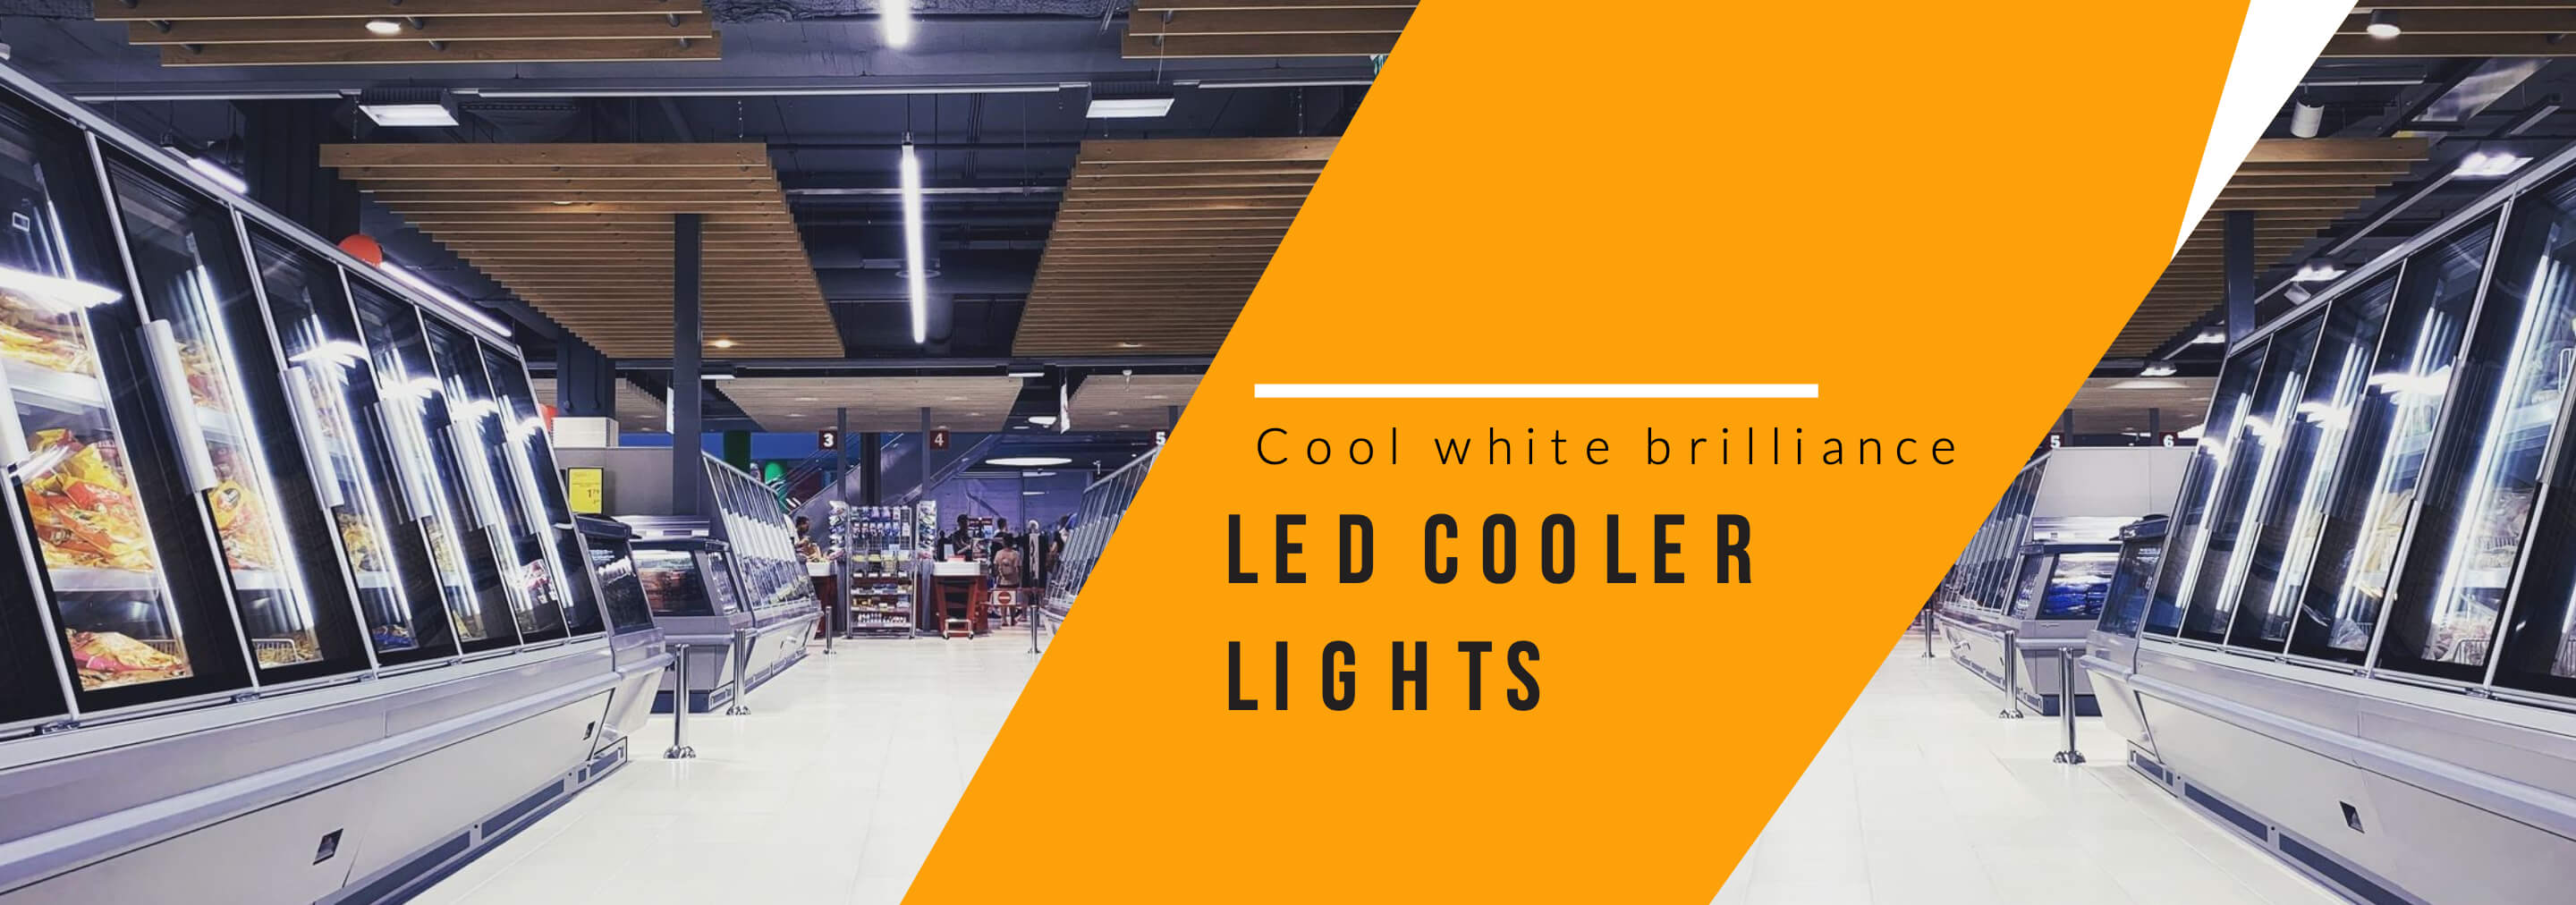 Banner LED Cooler Lights - Cool white brilliance 1o 2880x1012